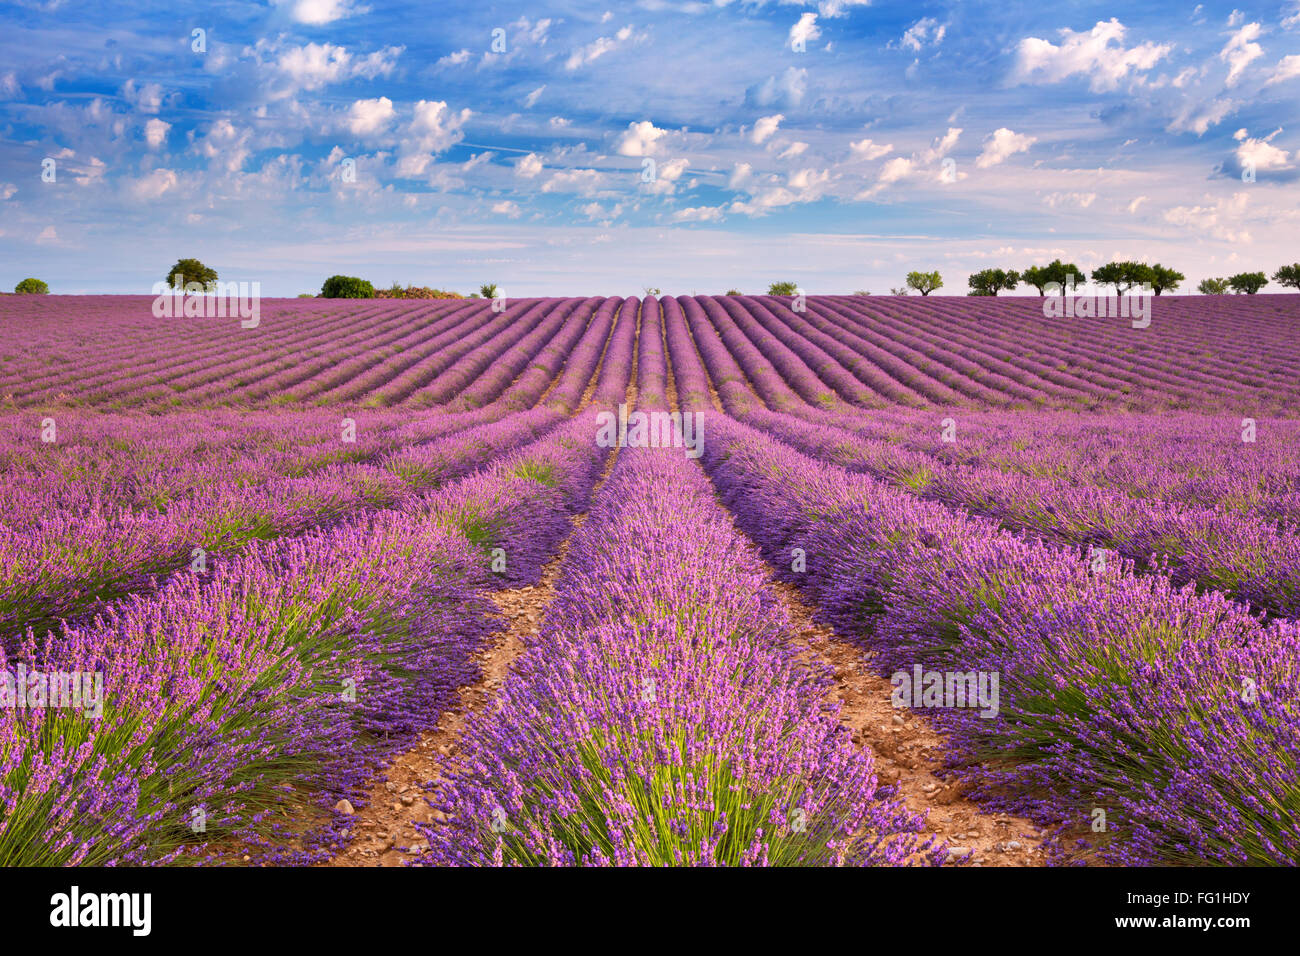 Blooming fields of lavender on the Valensole plateau in the Provence in southern France. - Stock Image